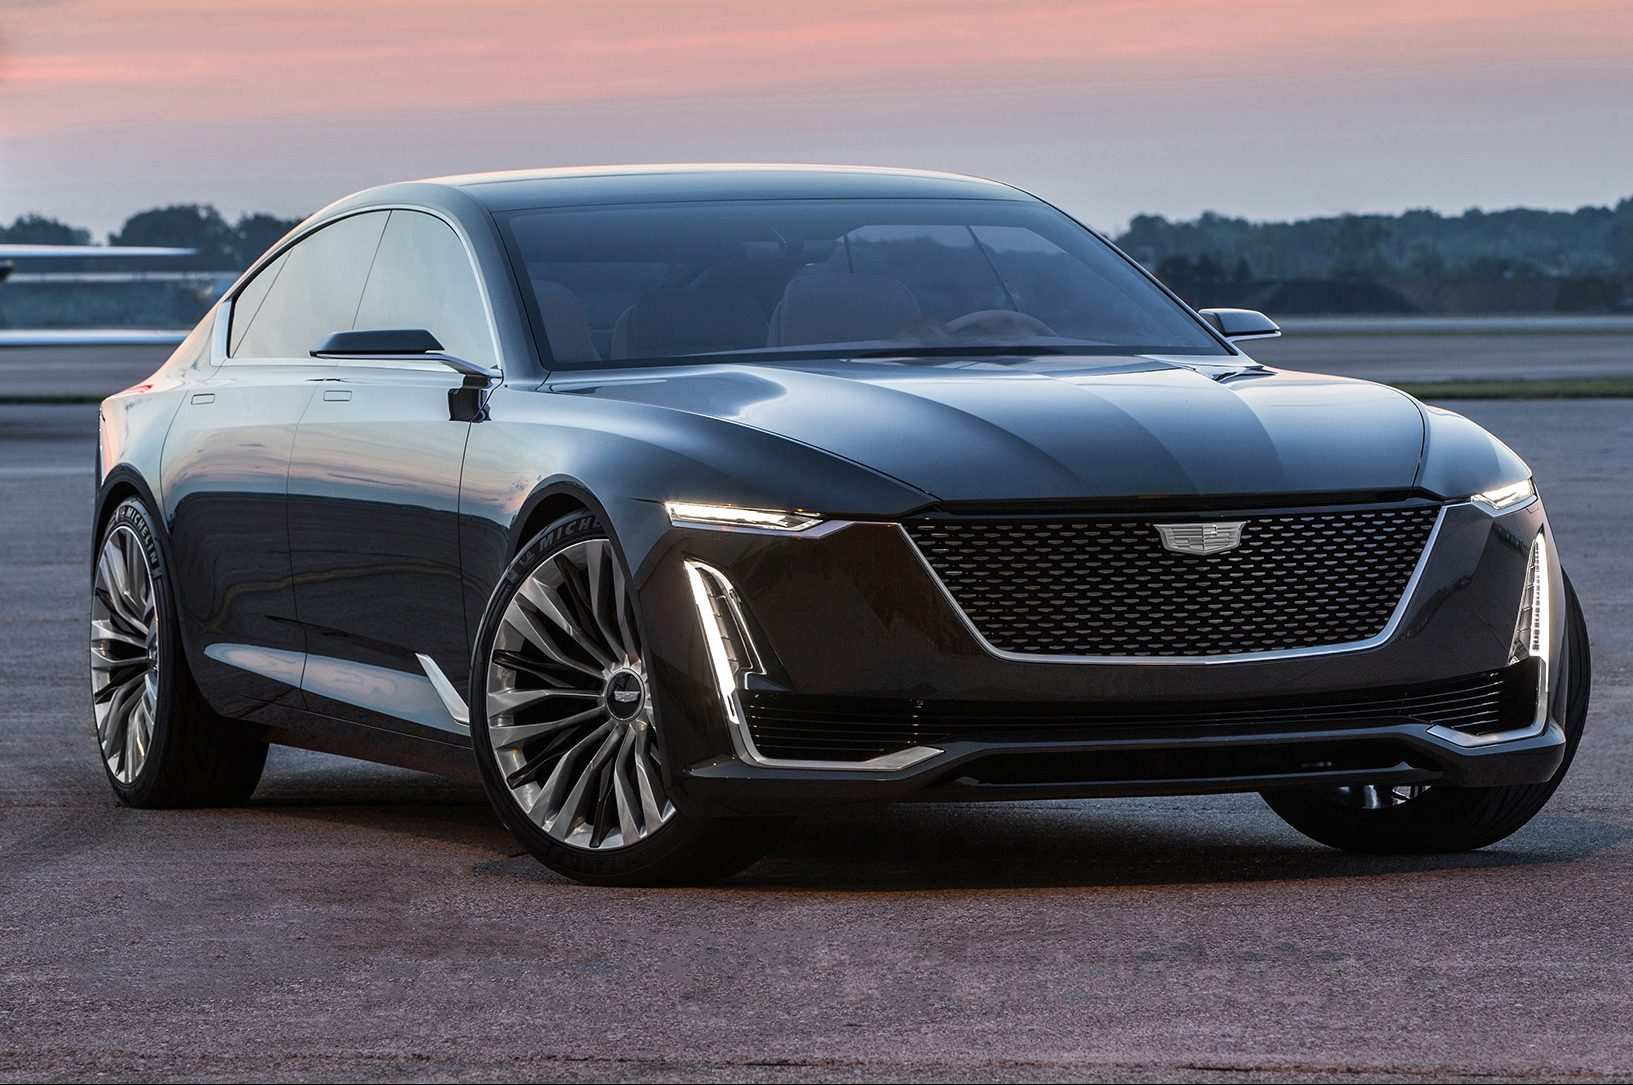 21 All New 2020 Cadillac Escalade Pictures